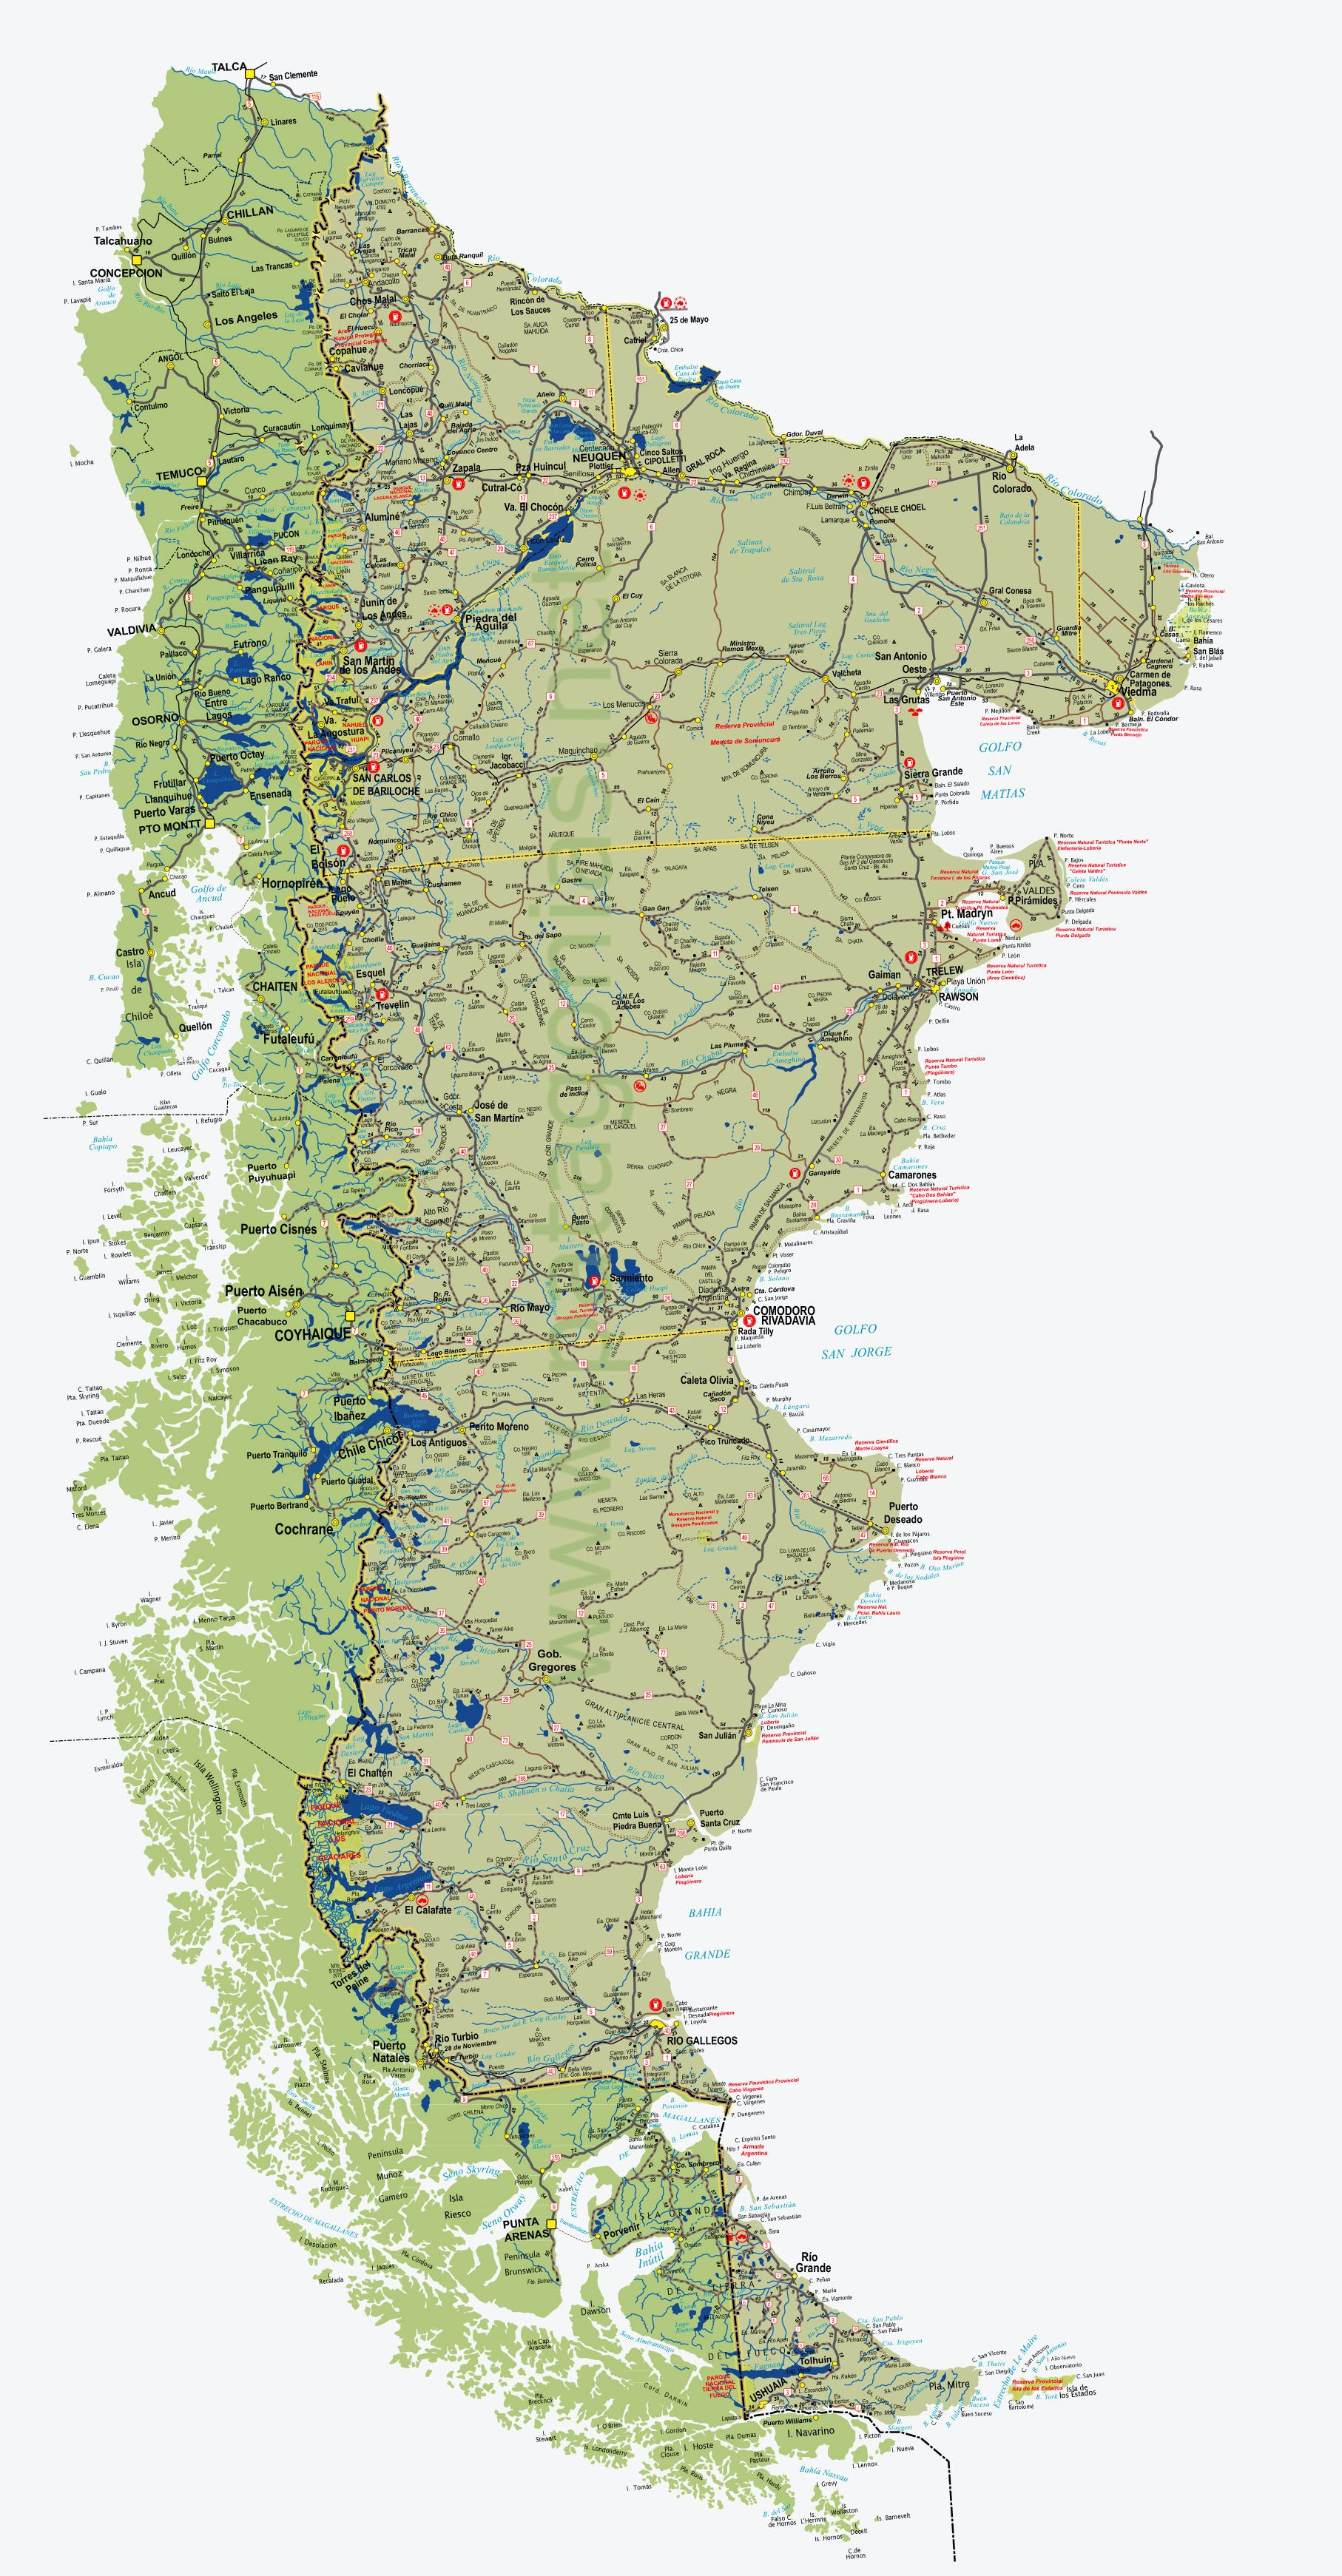 Road map of Patagonia.Patagonia is a sply populated region ... South America Road Map on library south america, features south america, road map buenos aires, road map anguilla, road map biology, landlocked country south america, water south america, lake nicaragua map central america, road map suriname, road map martinique, hotels south america, driving in columbia south america, road map brazil, blog south america, destination south america, tourist south america, road map scandinavia, road map zimbabwe, camping south america, trip south america,